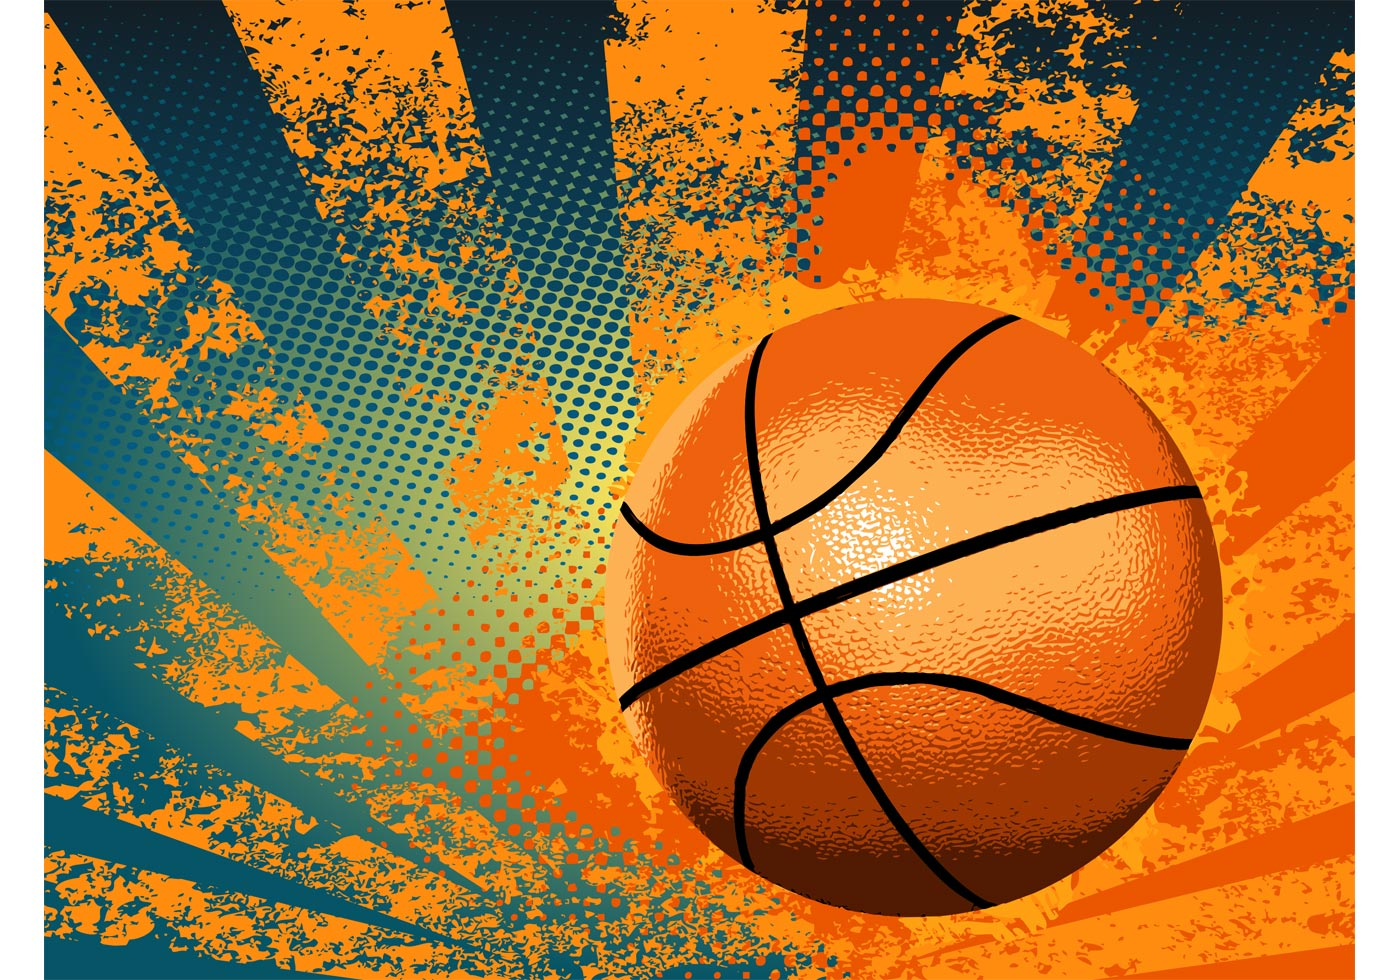 Sports Ball Vector Background Art Free Download: Grunge Basketball Background